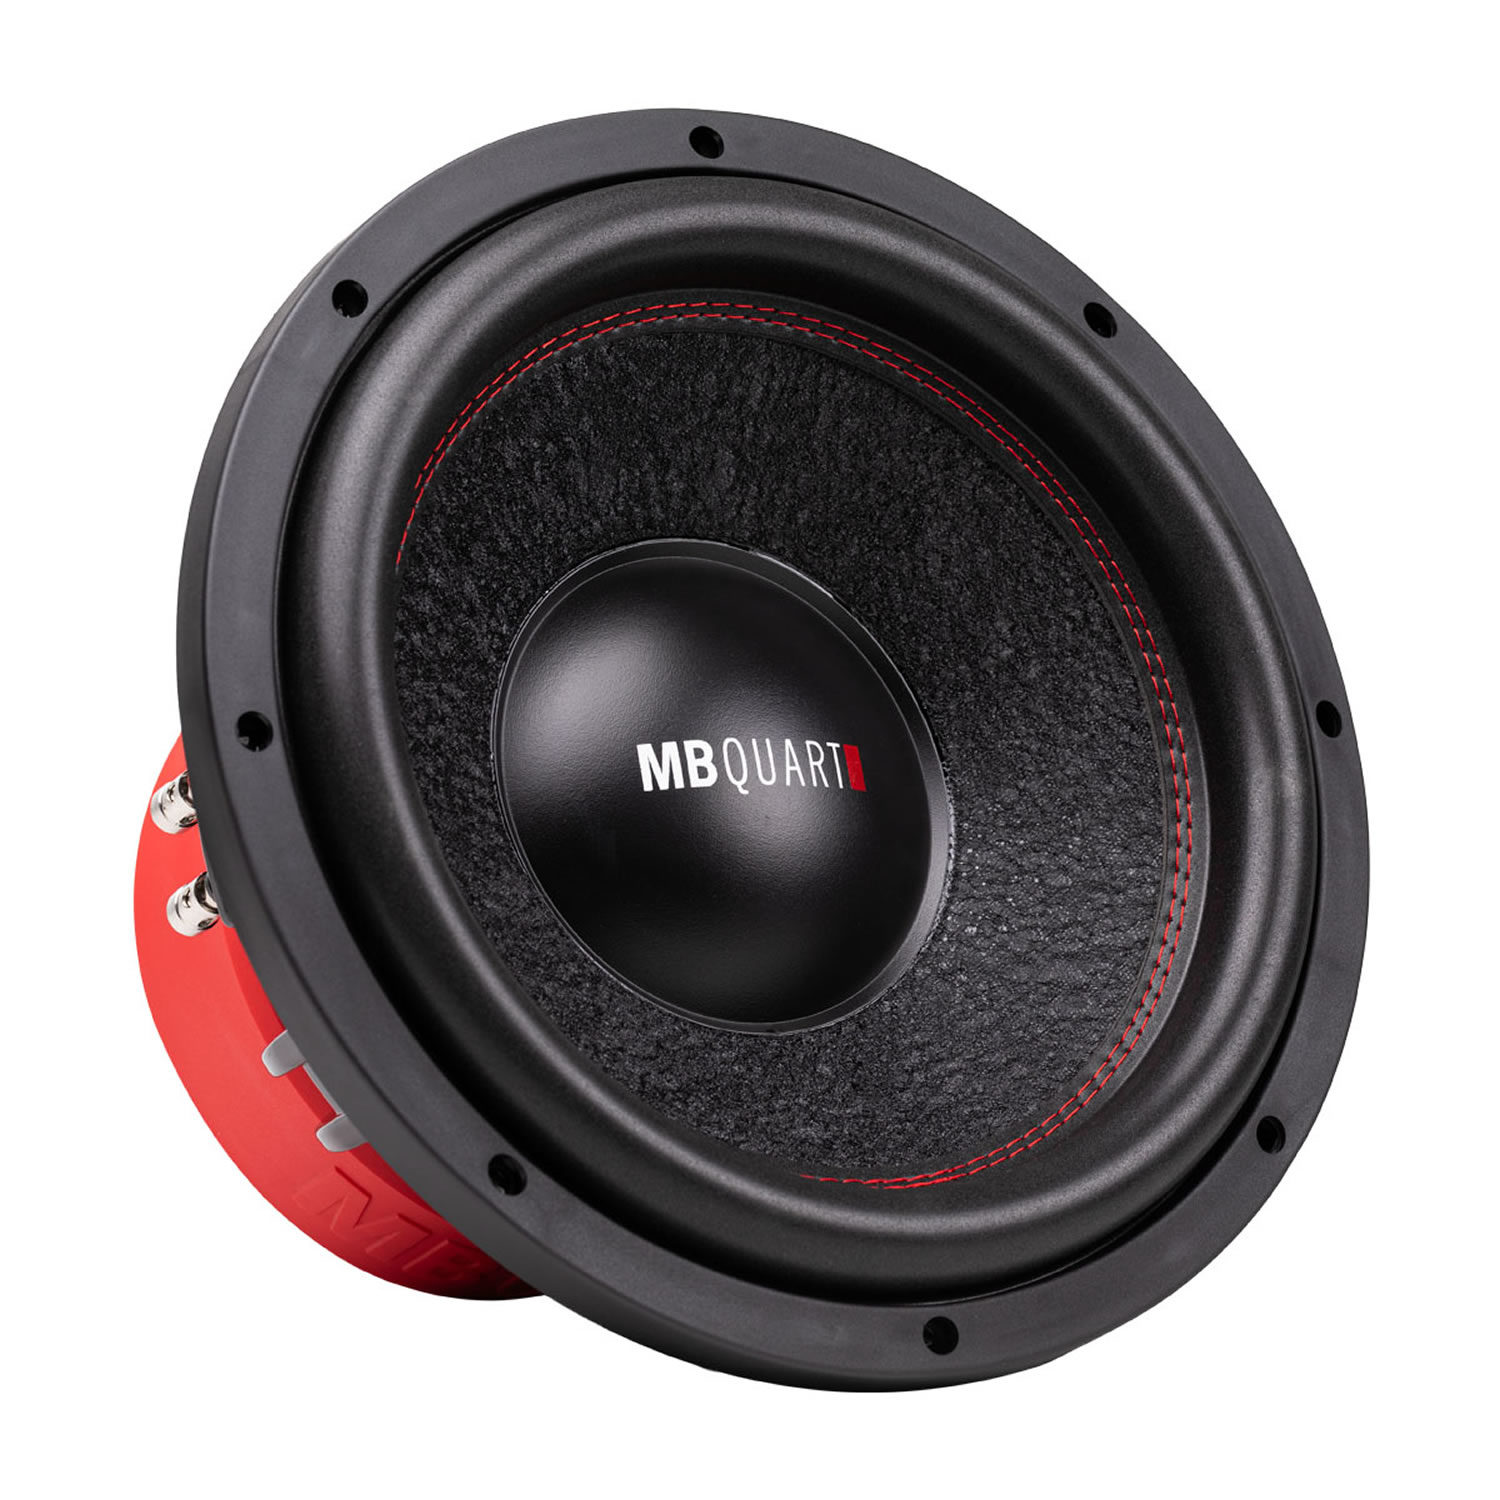 Mobile Subwoofers